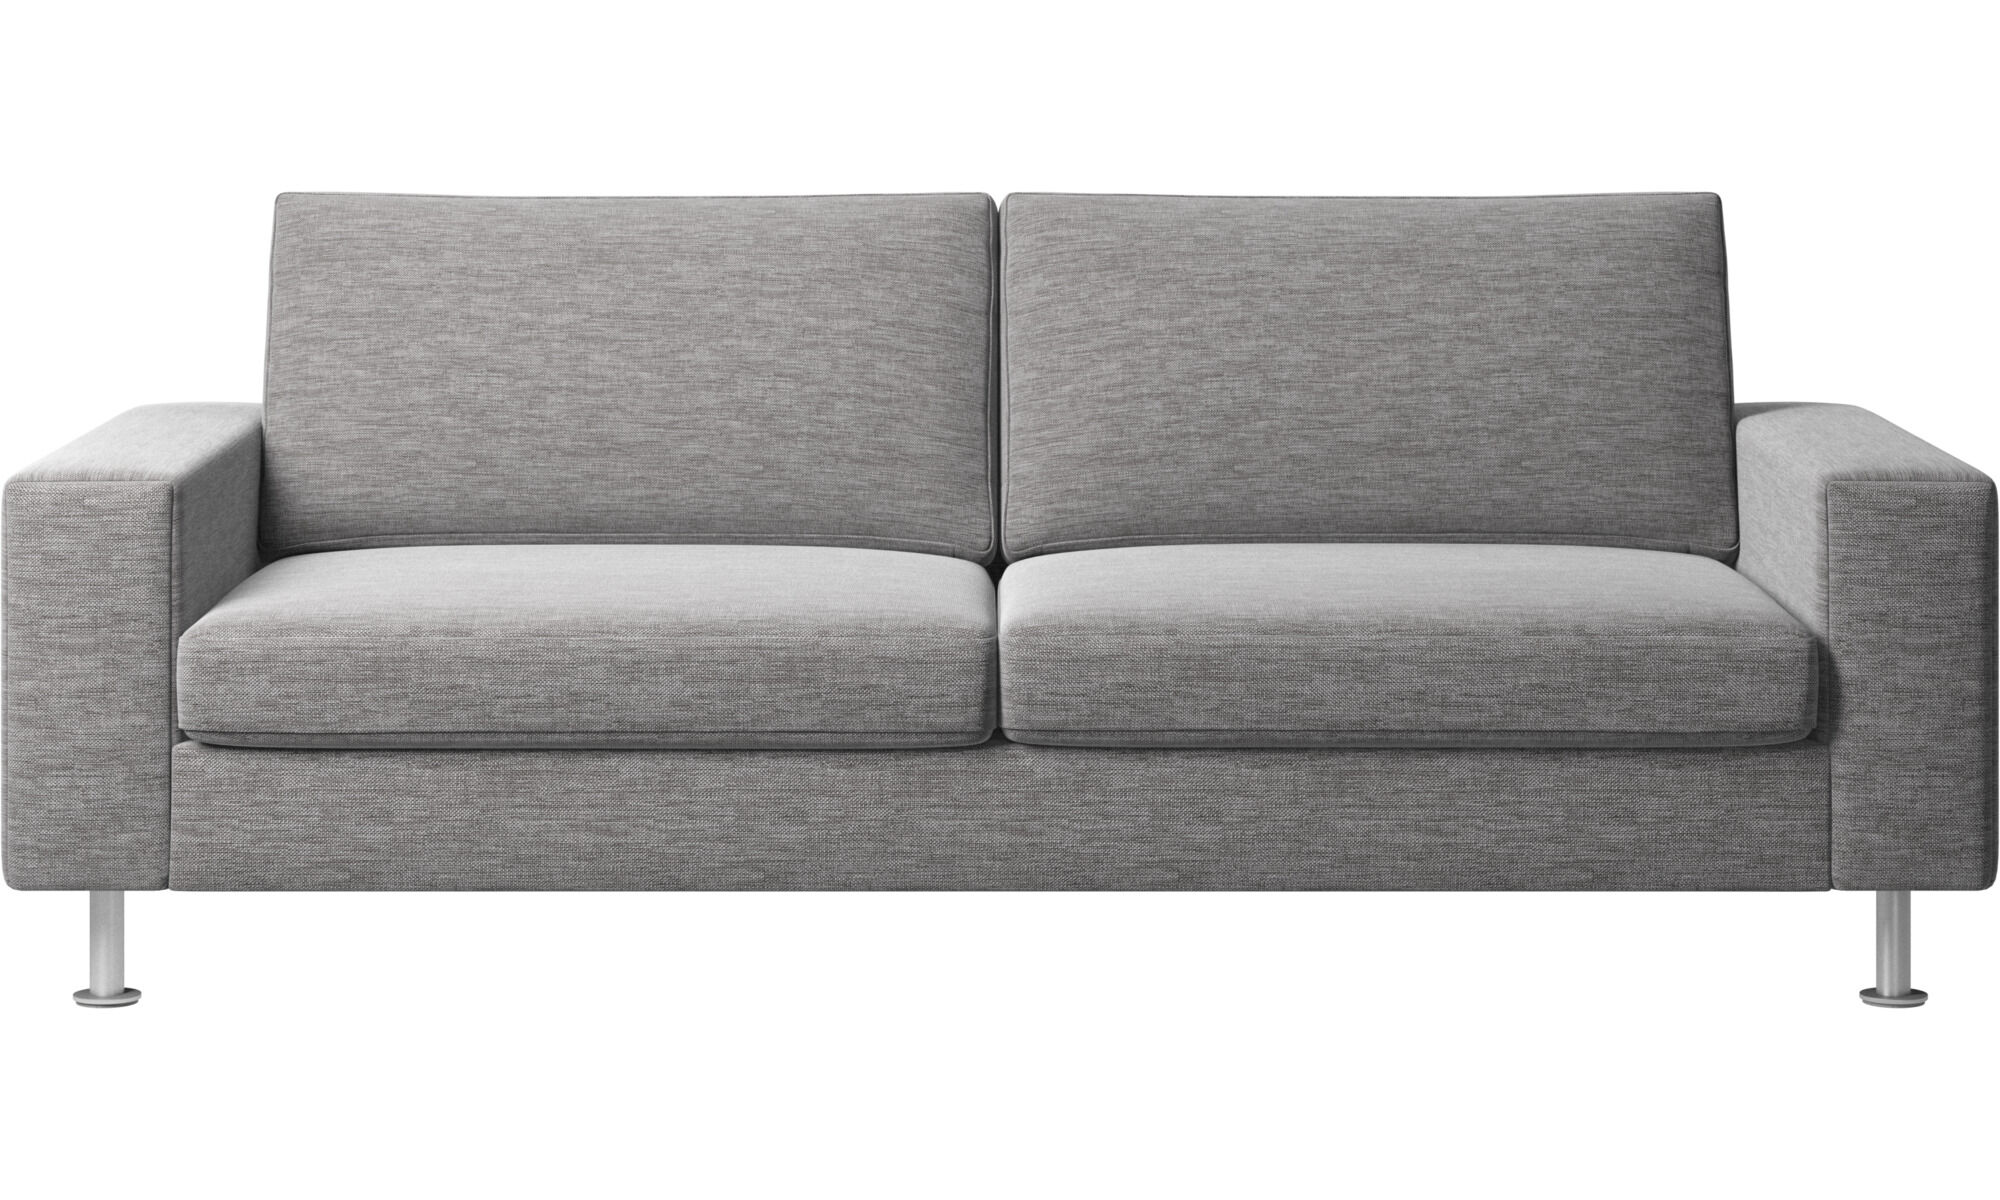 Sofa Beds Furniture American Leather Comfort Sleepers